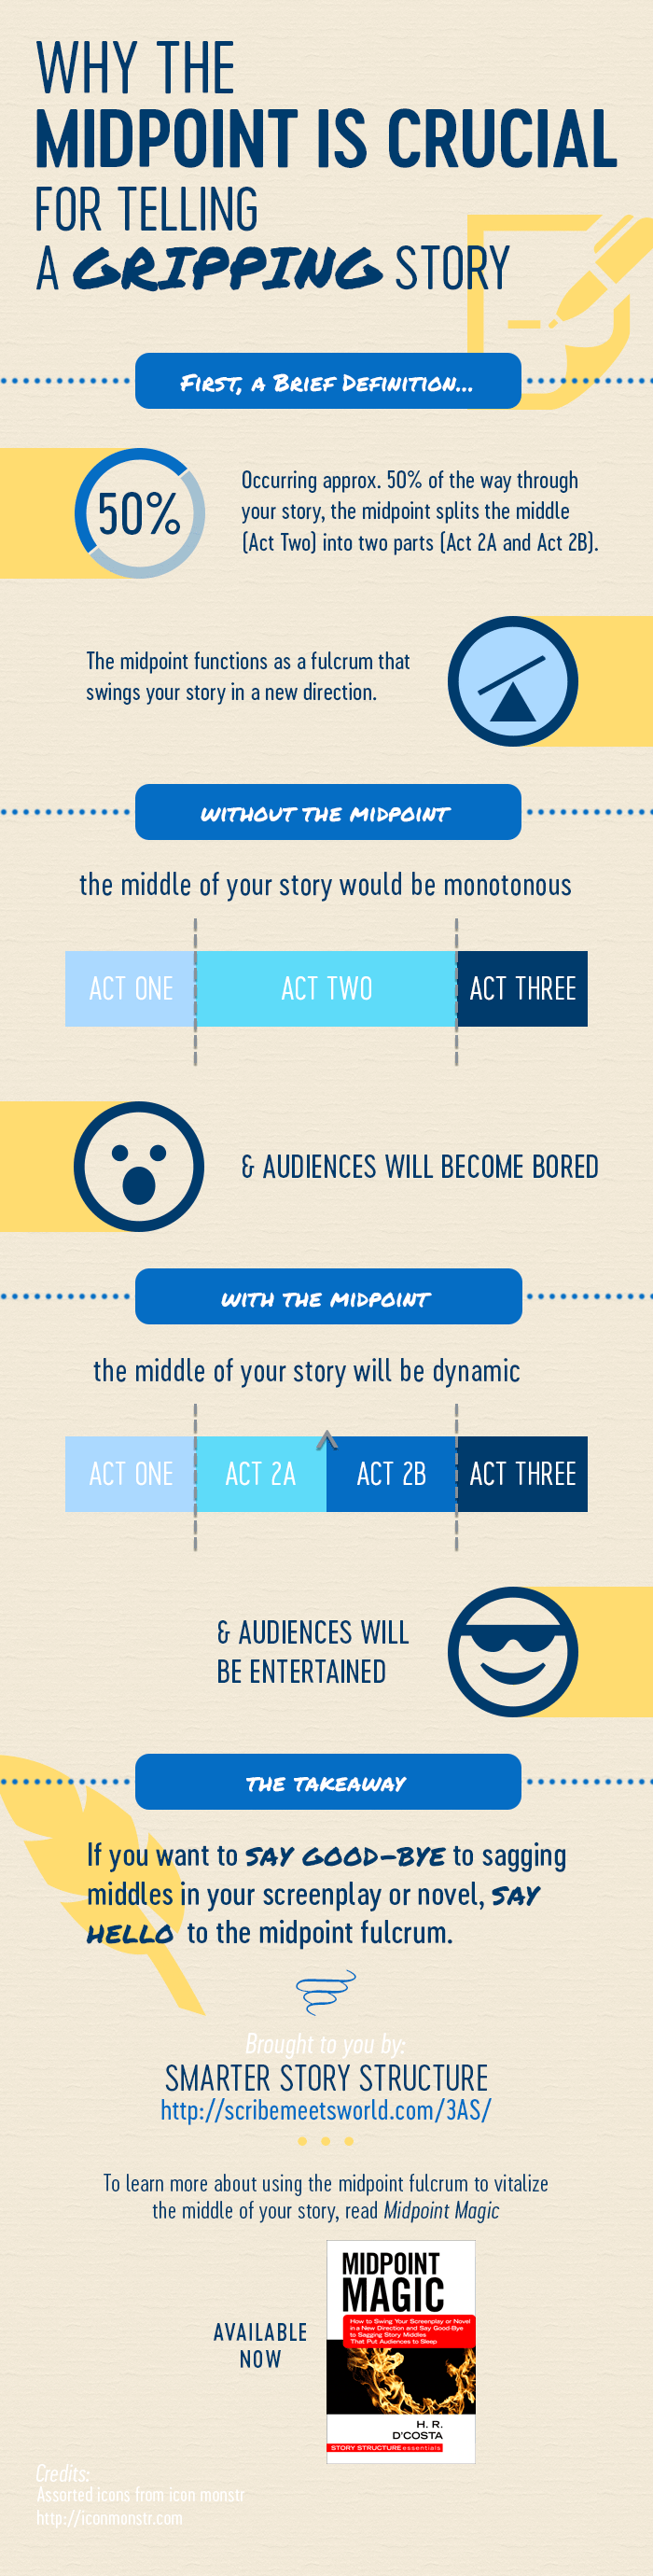 Why the midpoint is crucial for telling a gripping story [infographic]: With the midpoint fulcrum, the middle of your story will be dynamic—and audiences will be entertained. Brought to you by: SMARTER STORY STRUCTURE, http://scribemeetsworld.com/3AS/